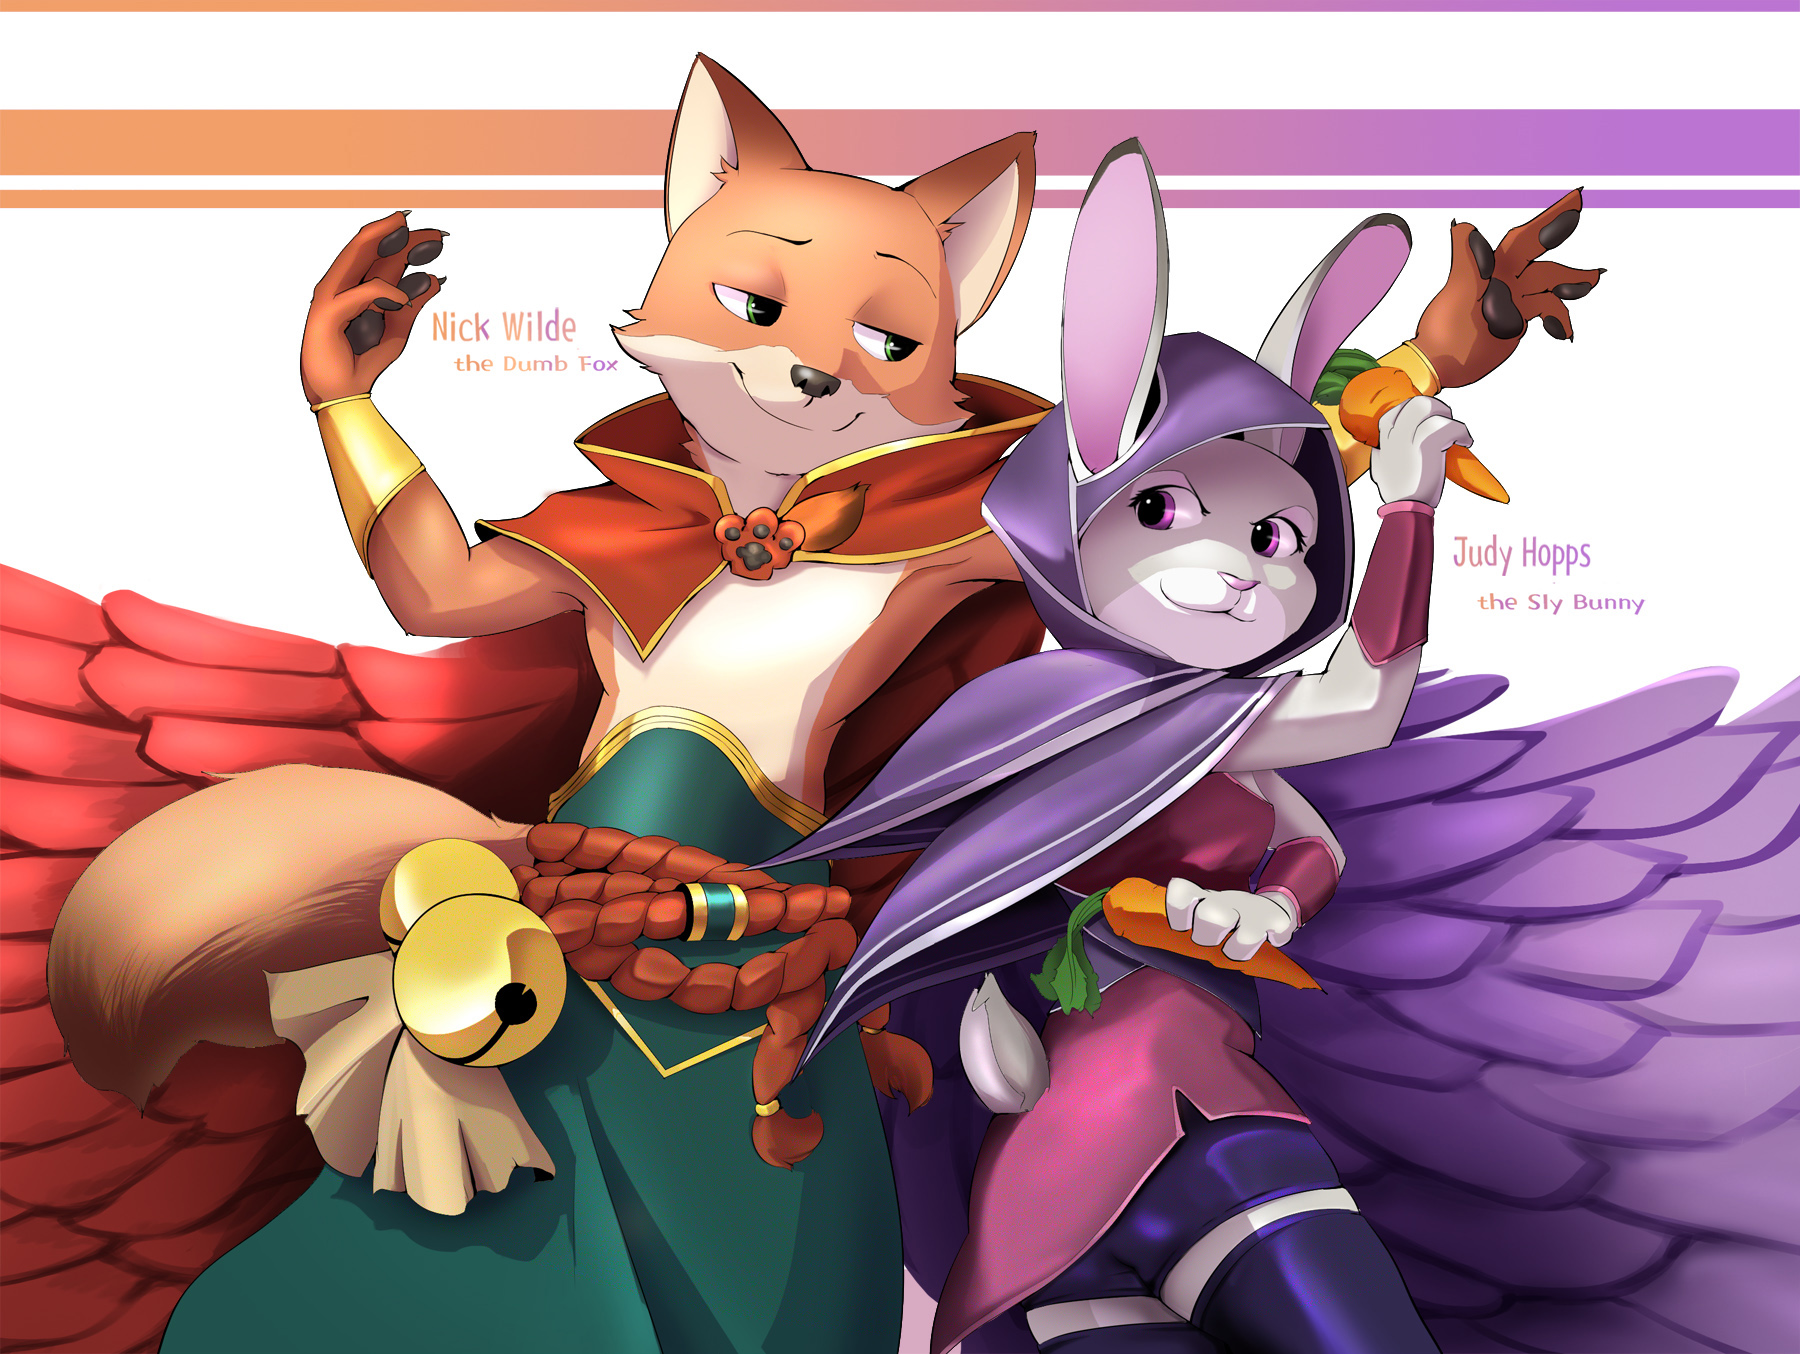 e926 2017 4_fingers anthro bell black_nose canine cape carrot cheek_tuft clothed clothing cosplay disney duo female food fox fur green_eyes grey_fur half-closed_eyes holding_food holding_object judy_hopps lagomorph league_of_legends looking_aside male mammal nick_wilde orange_fur pink_nose purple_eyes rabbit rakan_(lol) riot_games simple_background small_tail smile tuft vegetable video_games white_background xayah_(lol) yoshifan30 zootopia